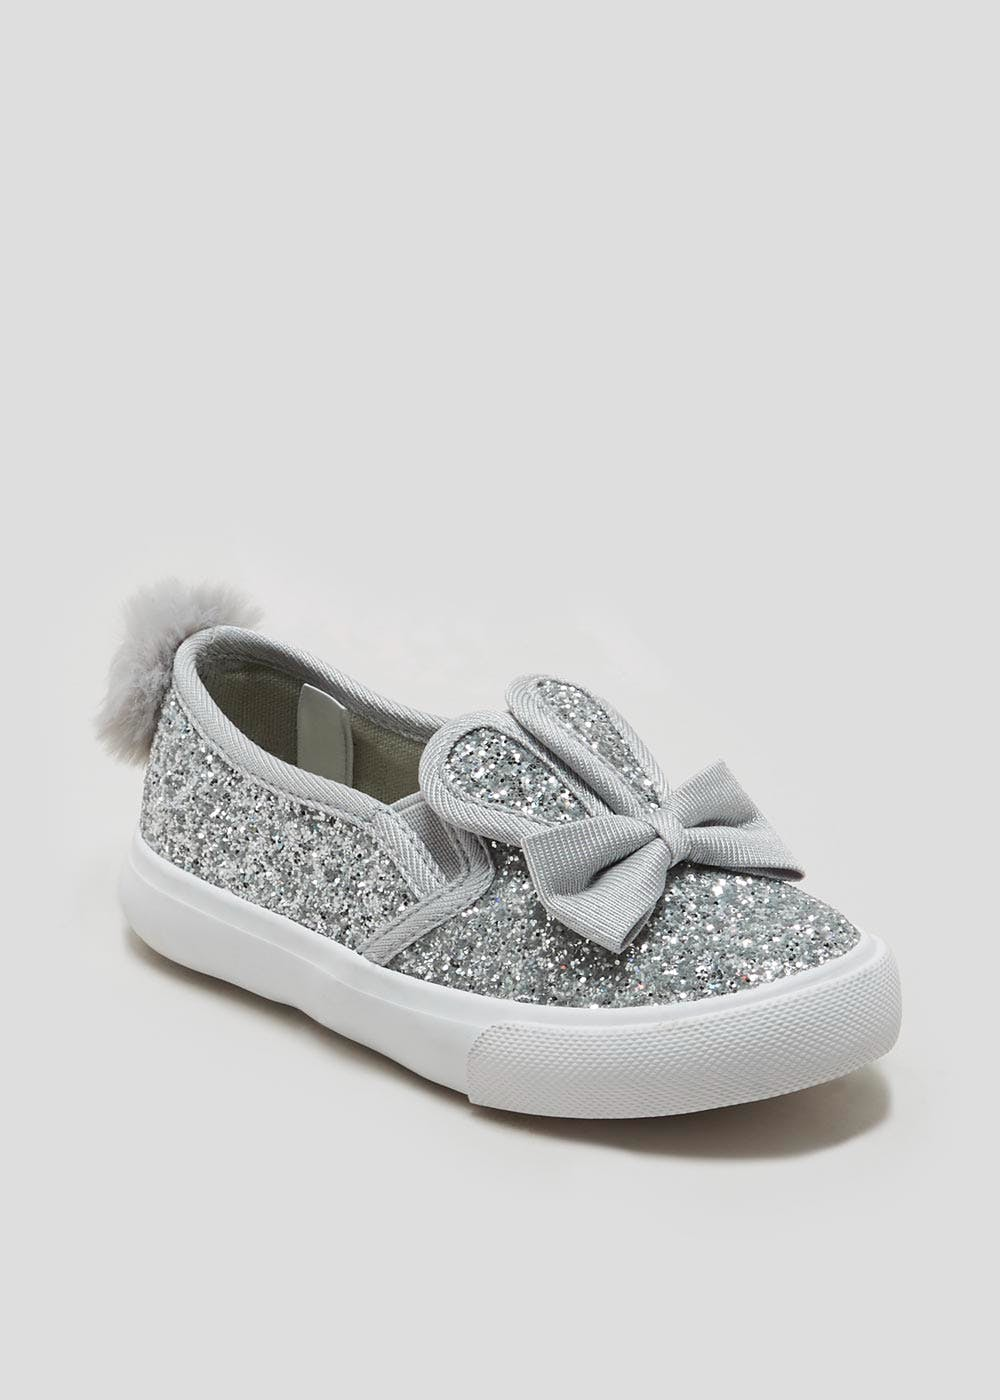 b07f2c6cebc7 Girls Glitter Bunny Slip On Pumps (Younger 4-12) – Silver – Matalan